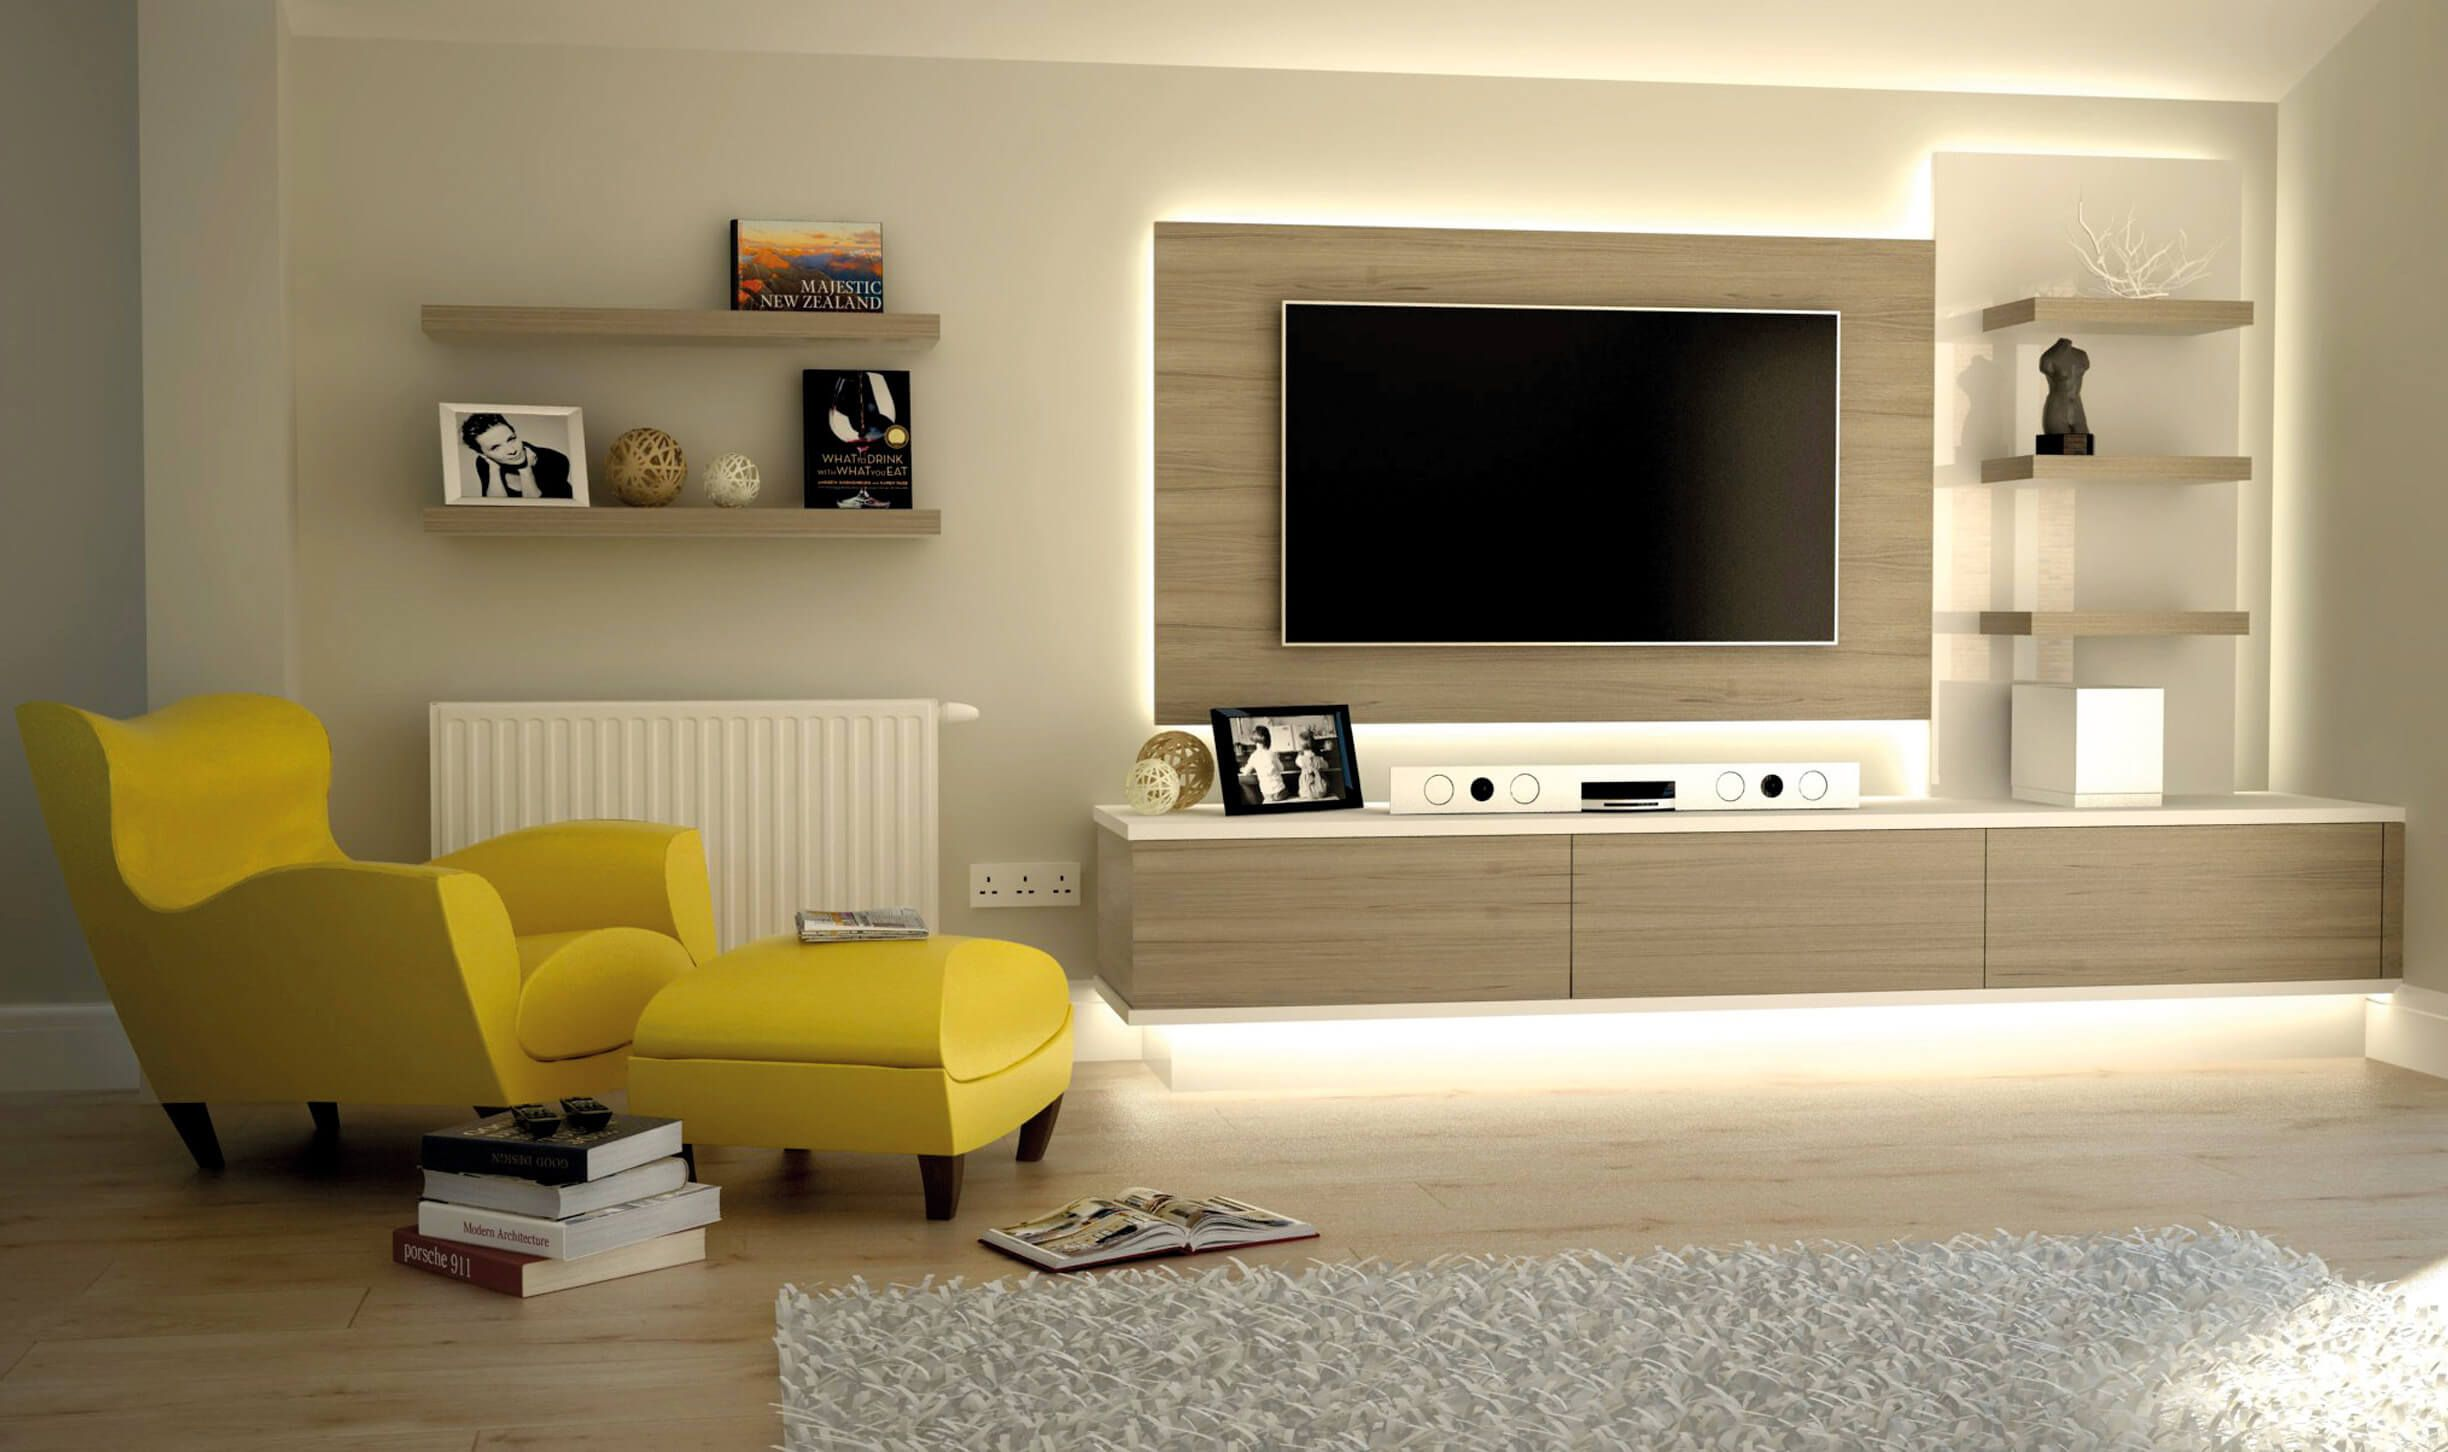 Bespoke tv cabinets bookcases and storage units for over 50 years our family and team design - Living room tv ideas ...